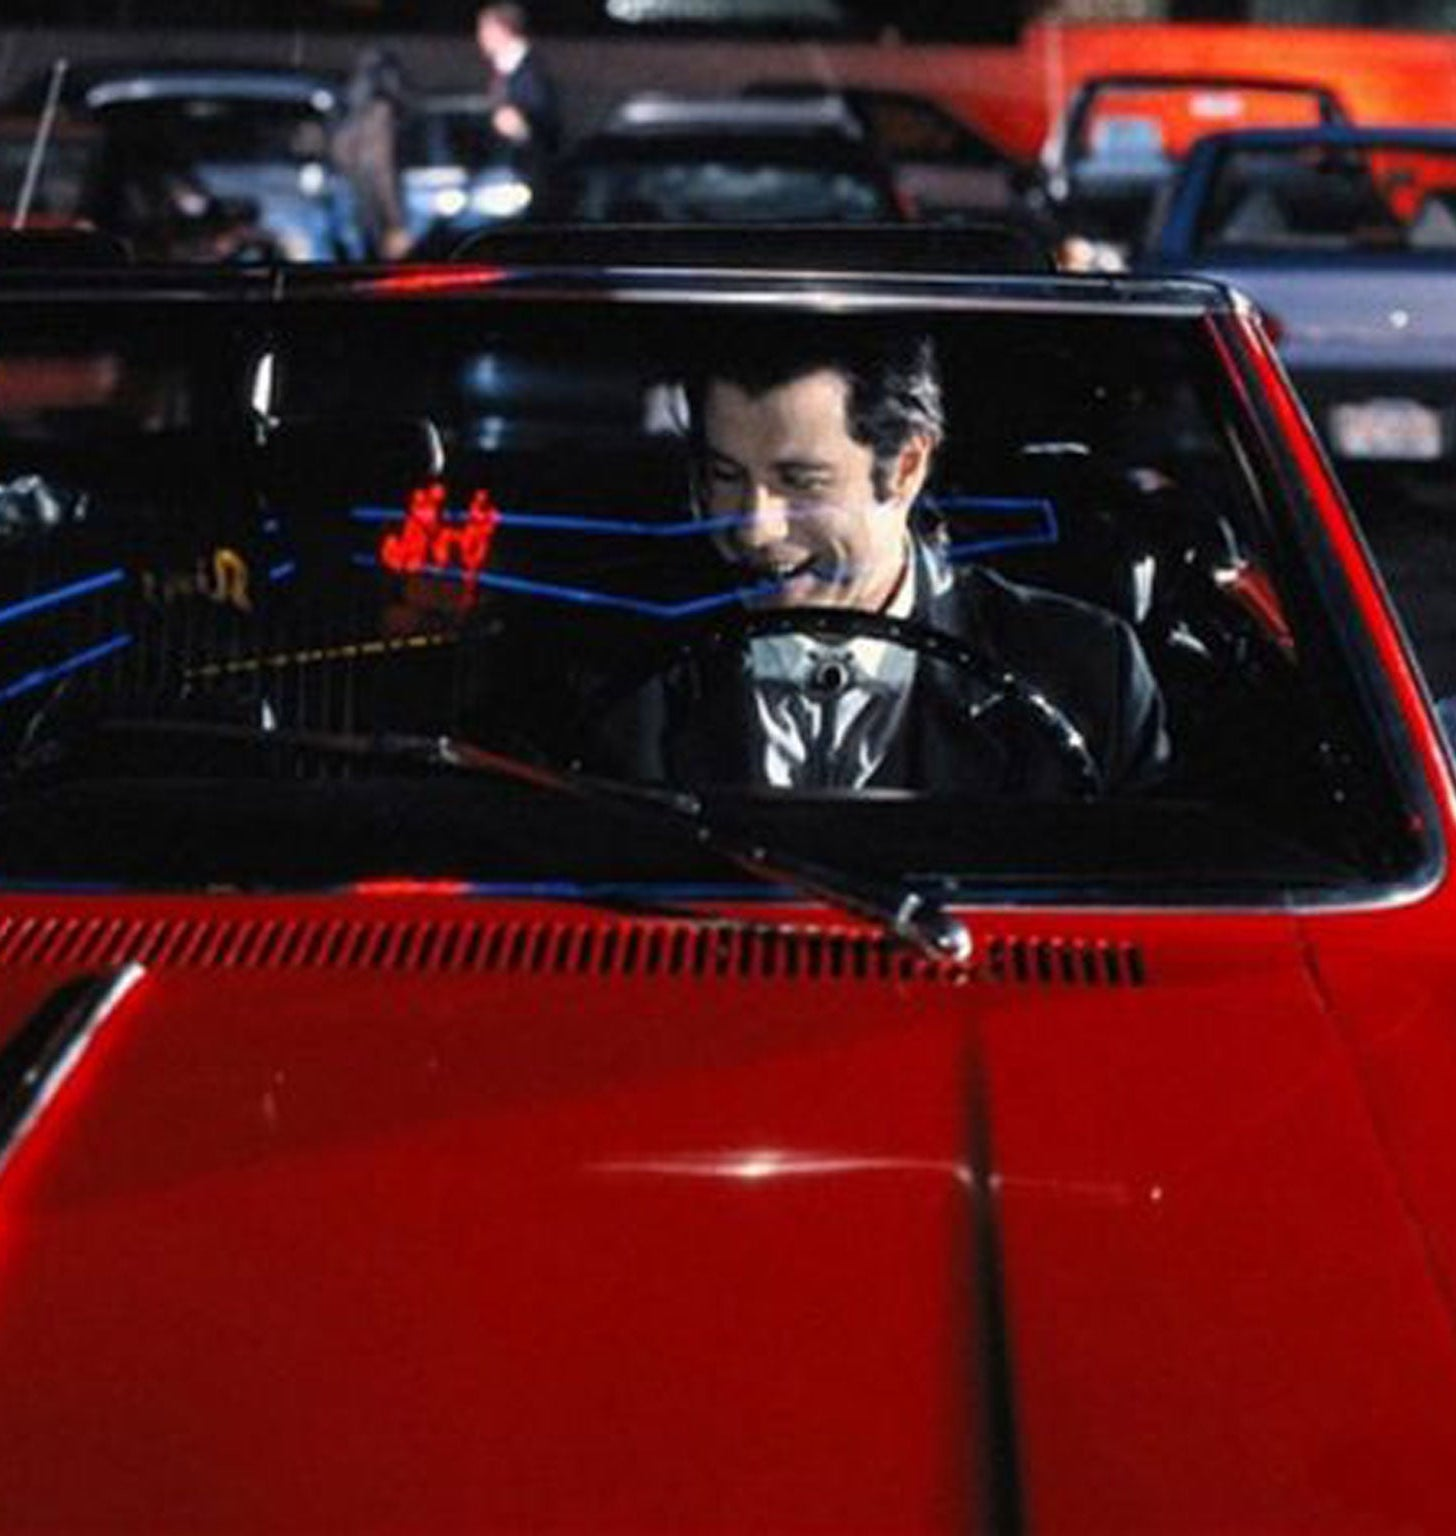 Tarantino Convertible 1 25 Things You Never Knew About Pulp Fiction